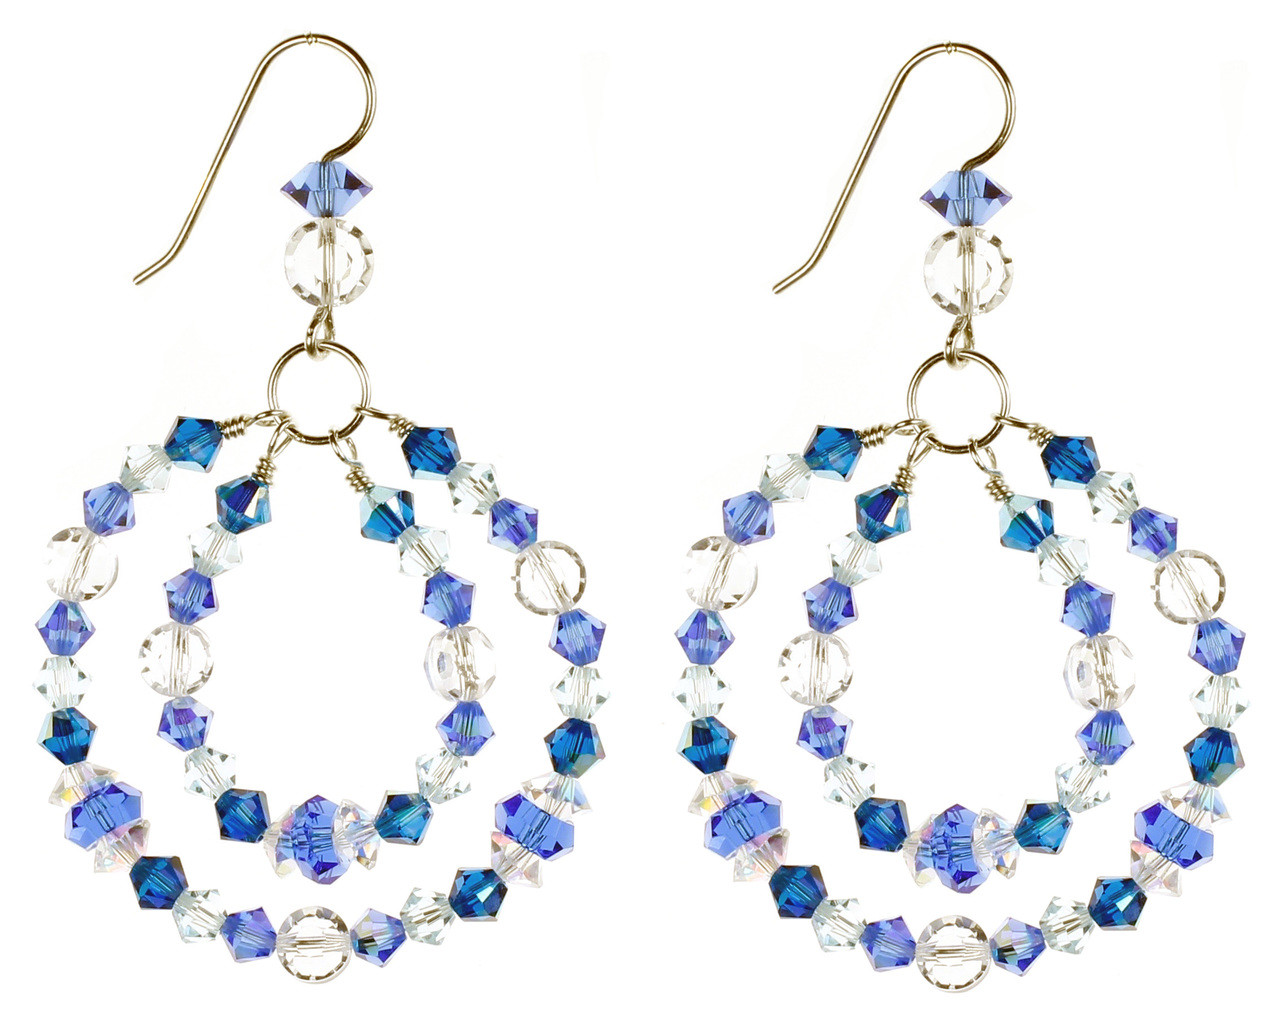 ff8104902 Blue hoop earrings with crystals from Swarovski. Birthstone jewelry by Karen  Curtis NYC